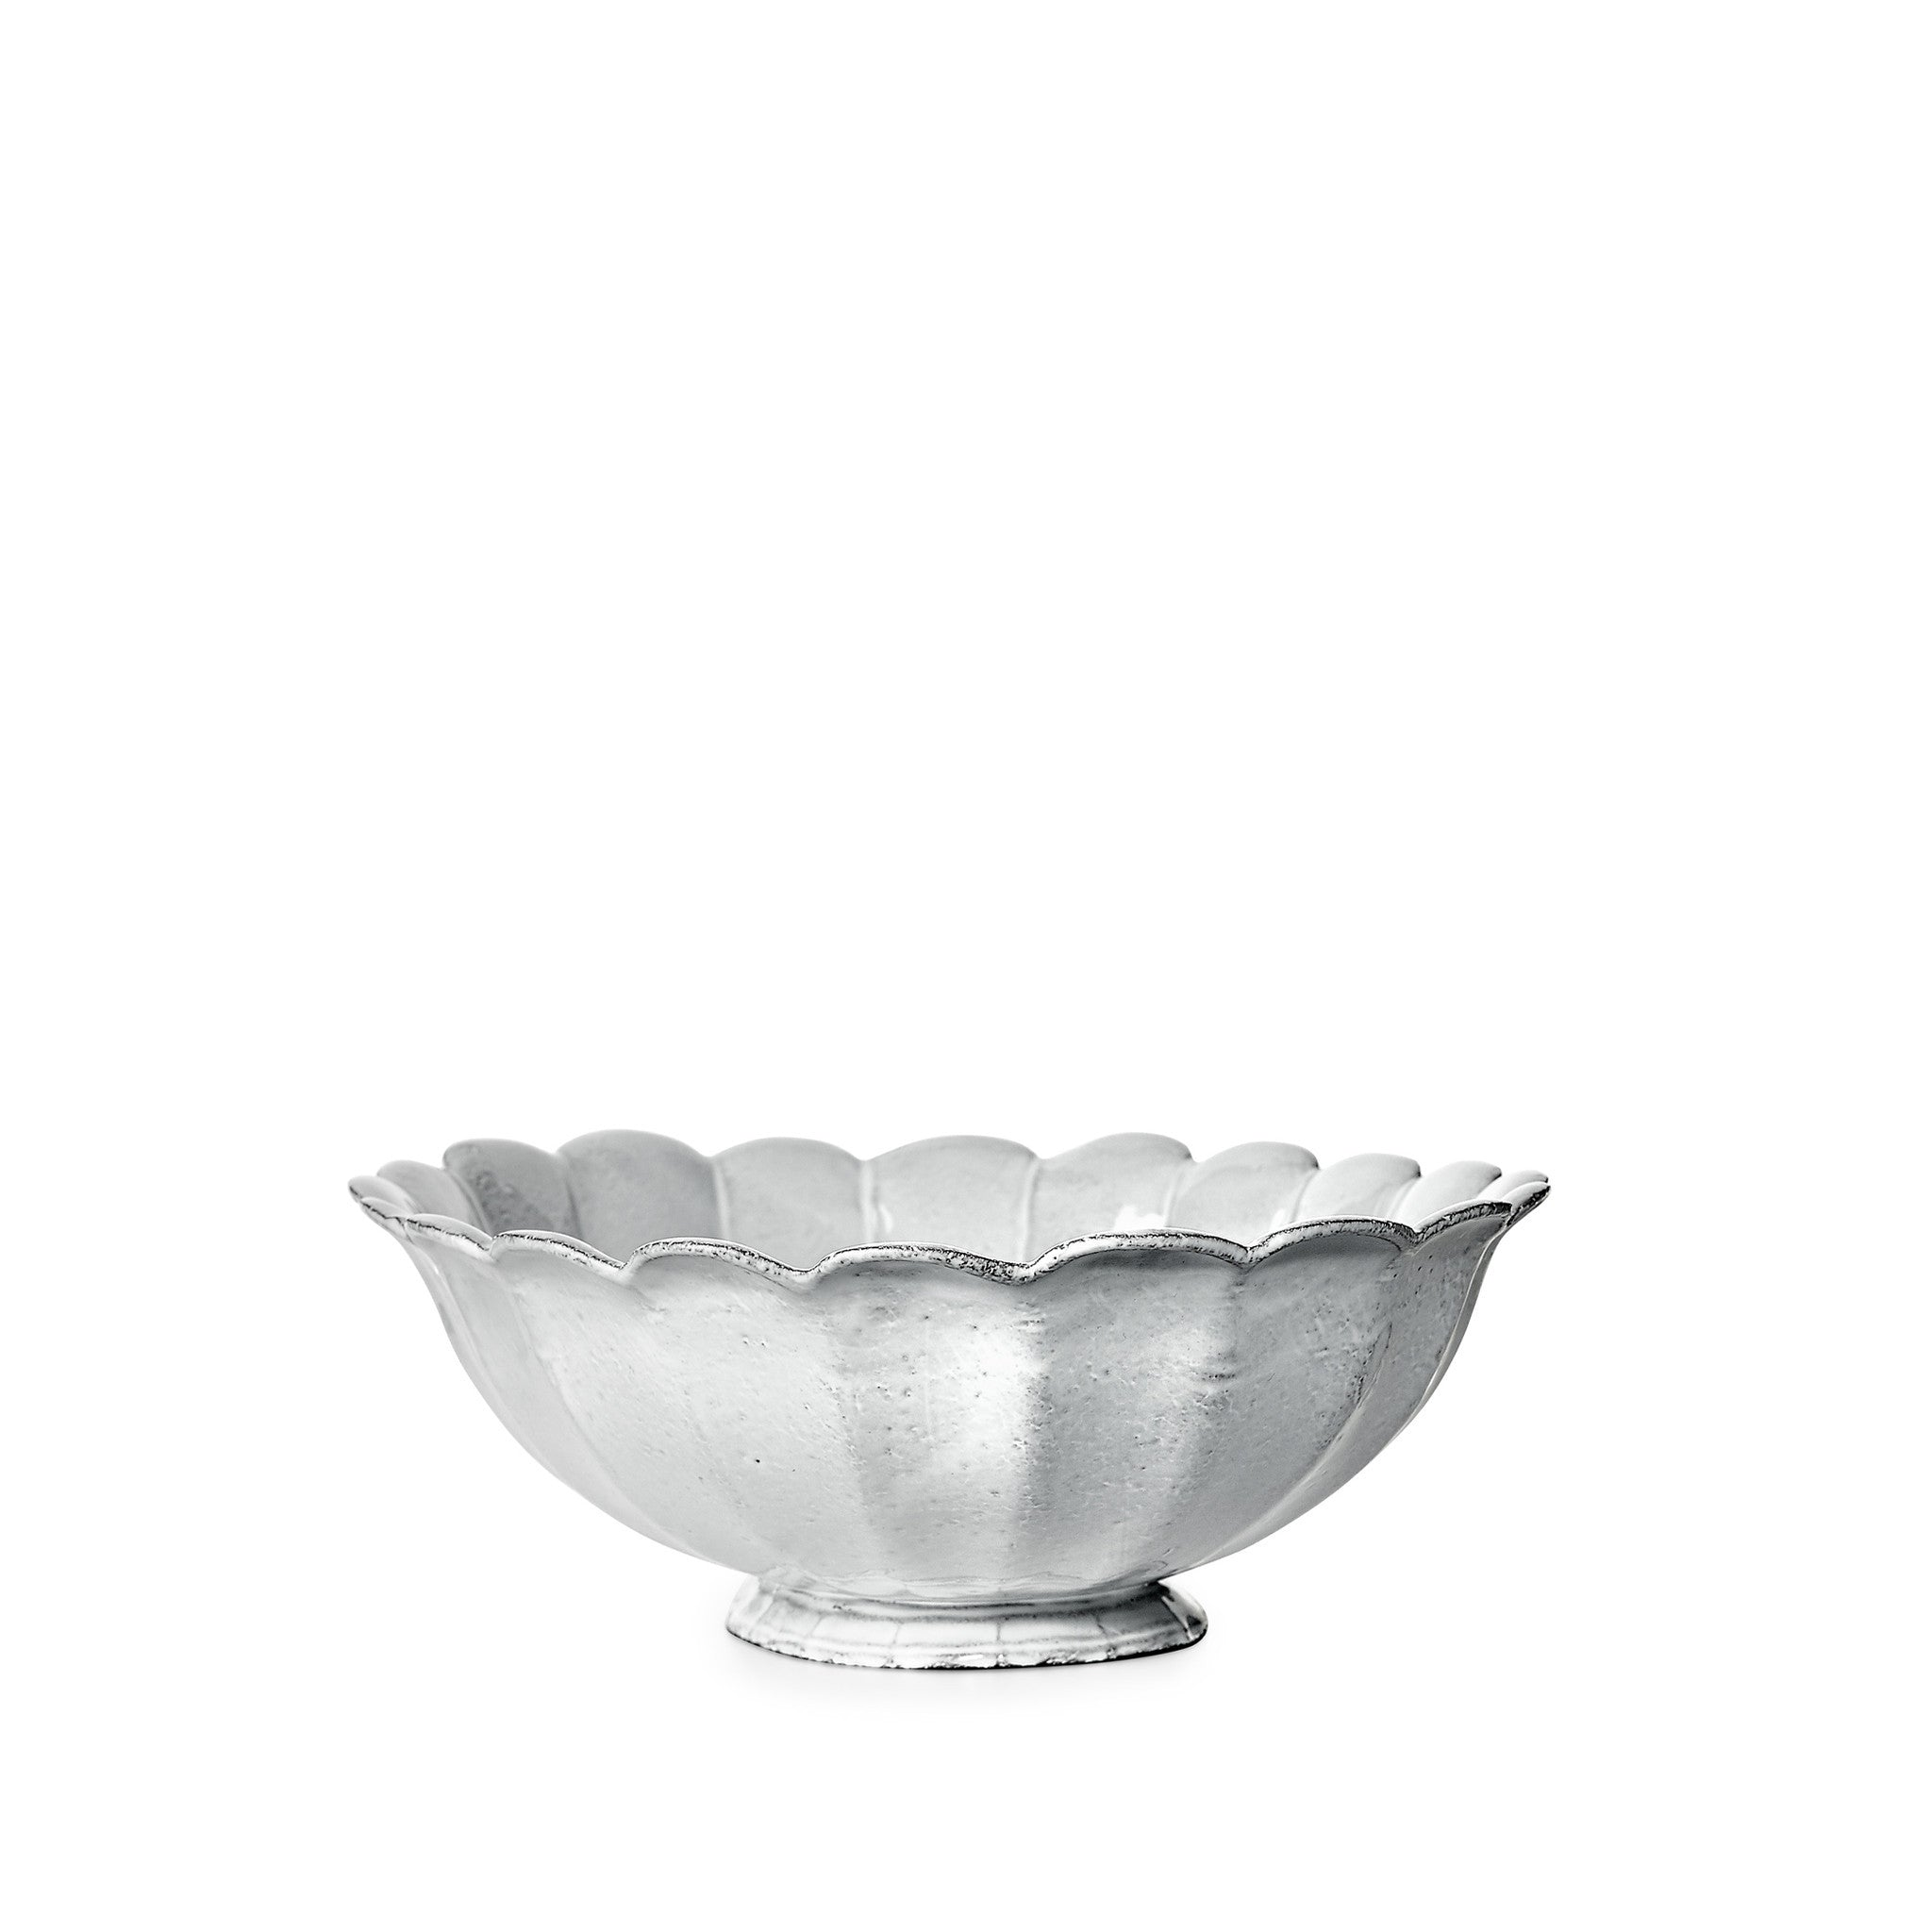 Marguerite Salad Bowl by Astier de Villatte